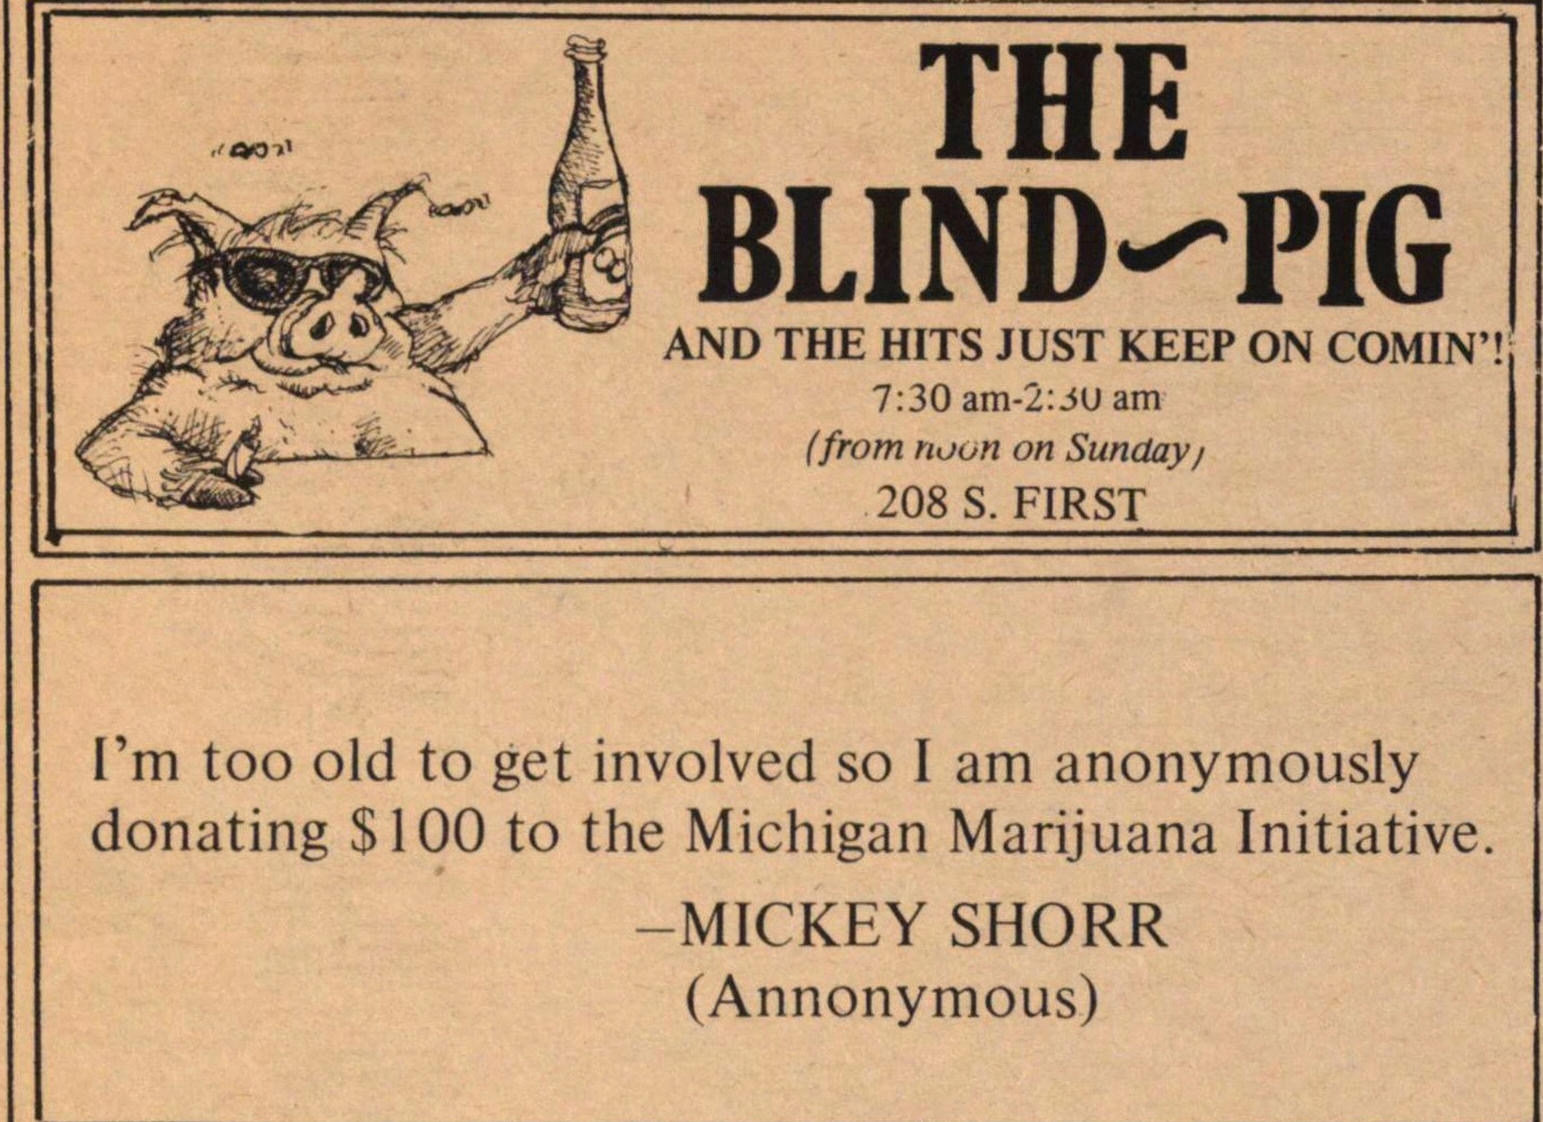 The Blind--pig image